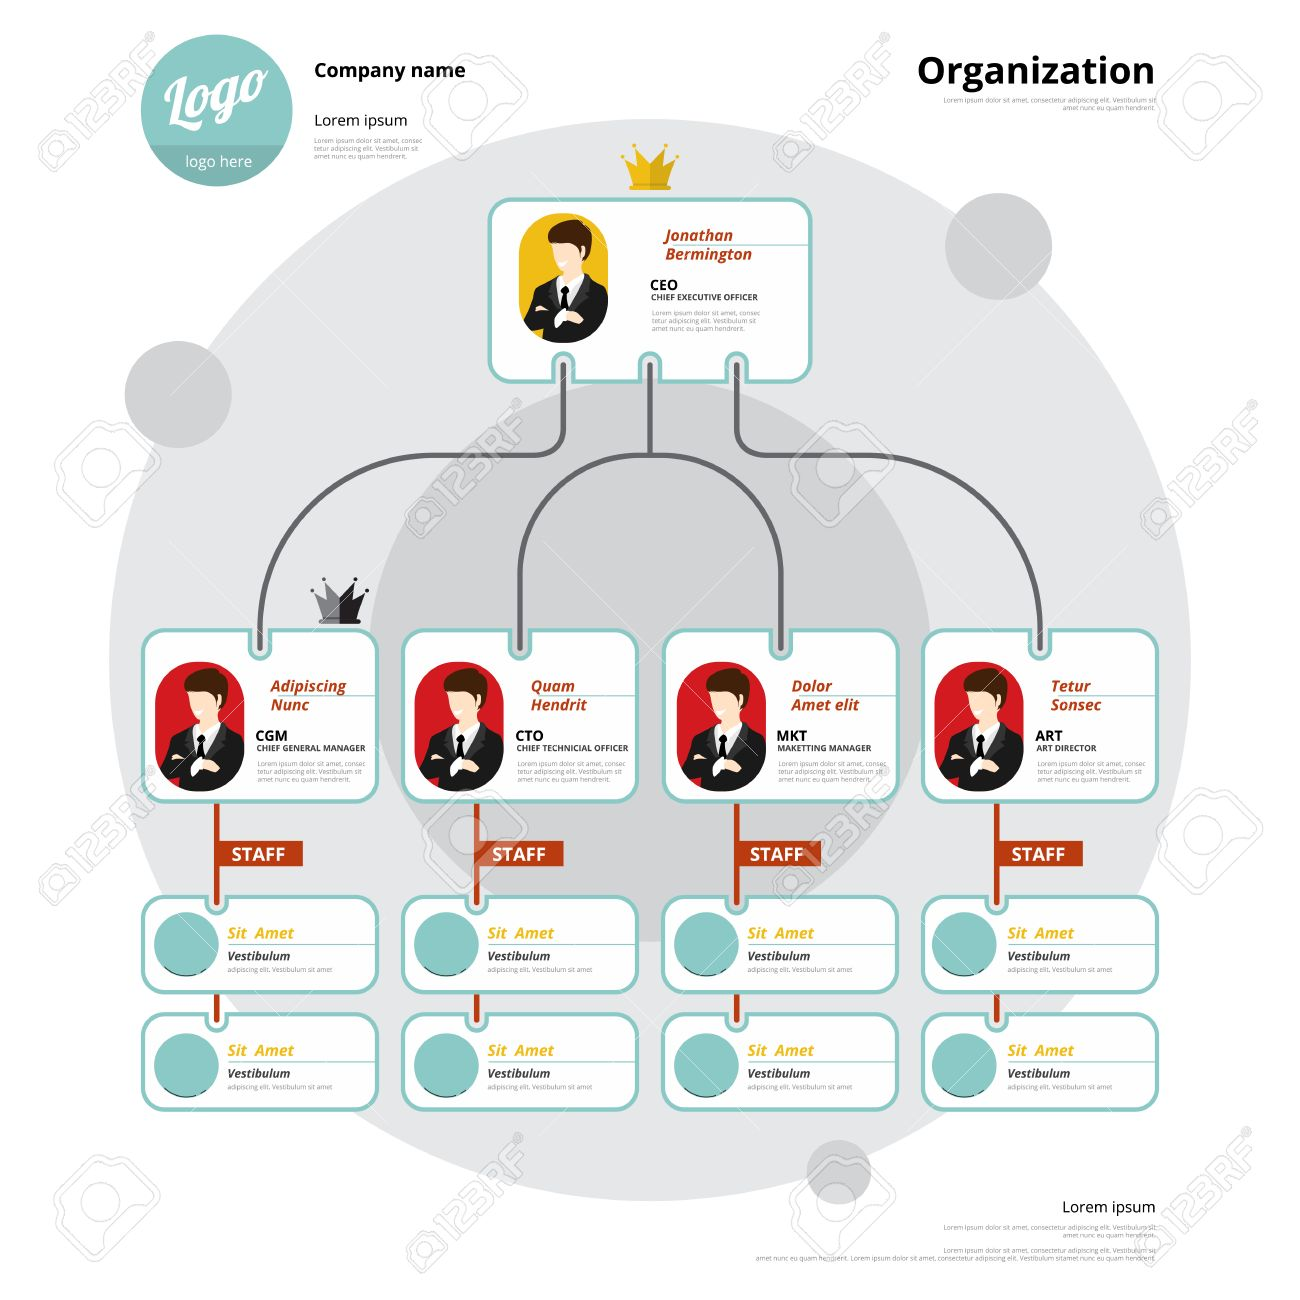 Organization chart corporate structure flow of organizational organization chart corporate structure flow of organizational stock vector 39250603 nvjuhfo Choice Image